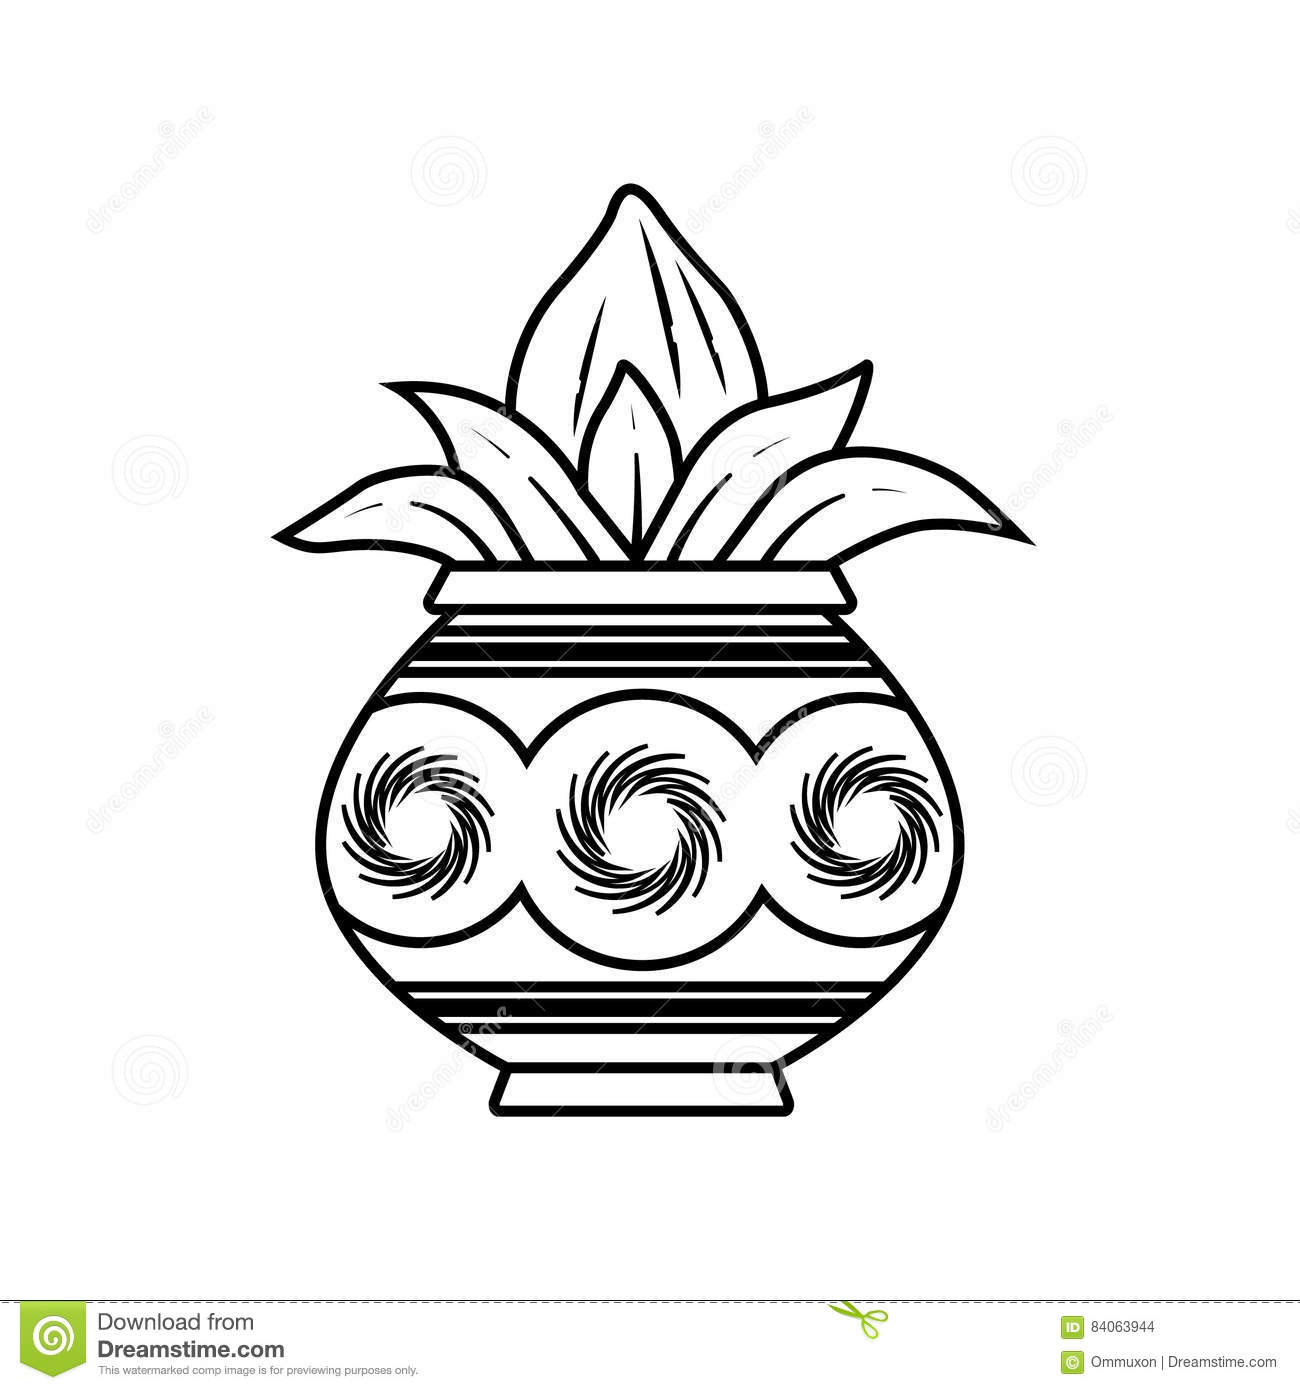 Kalash stock vector. Image of coconut, kalash, beautiful ...